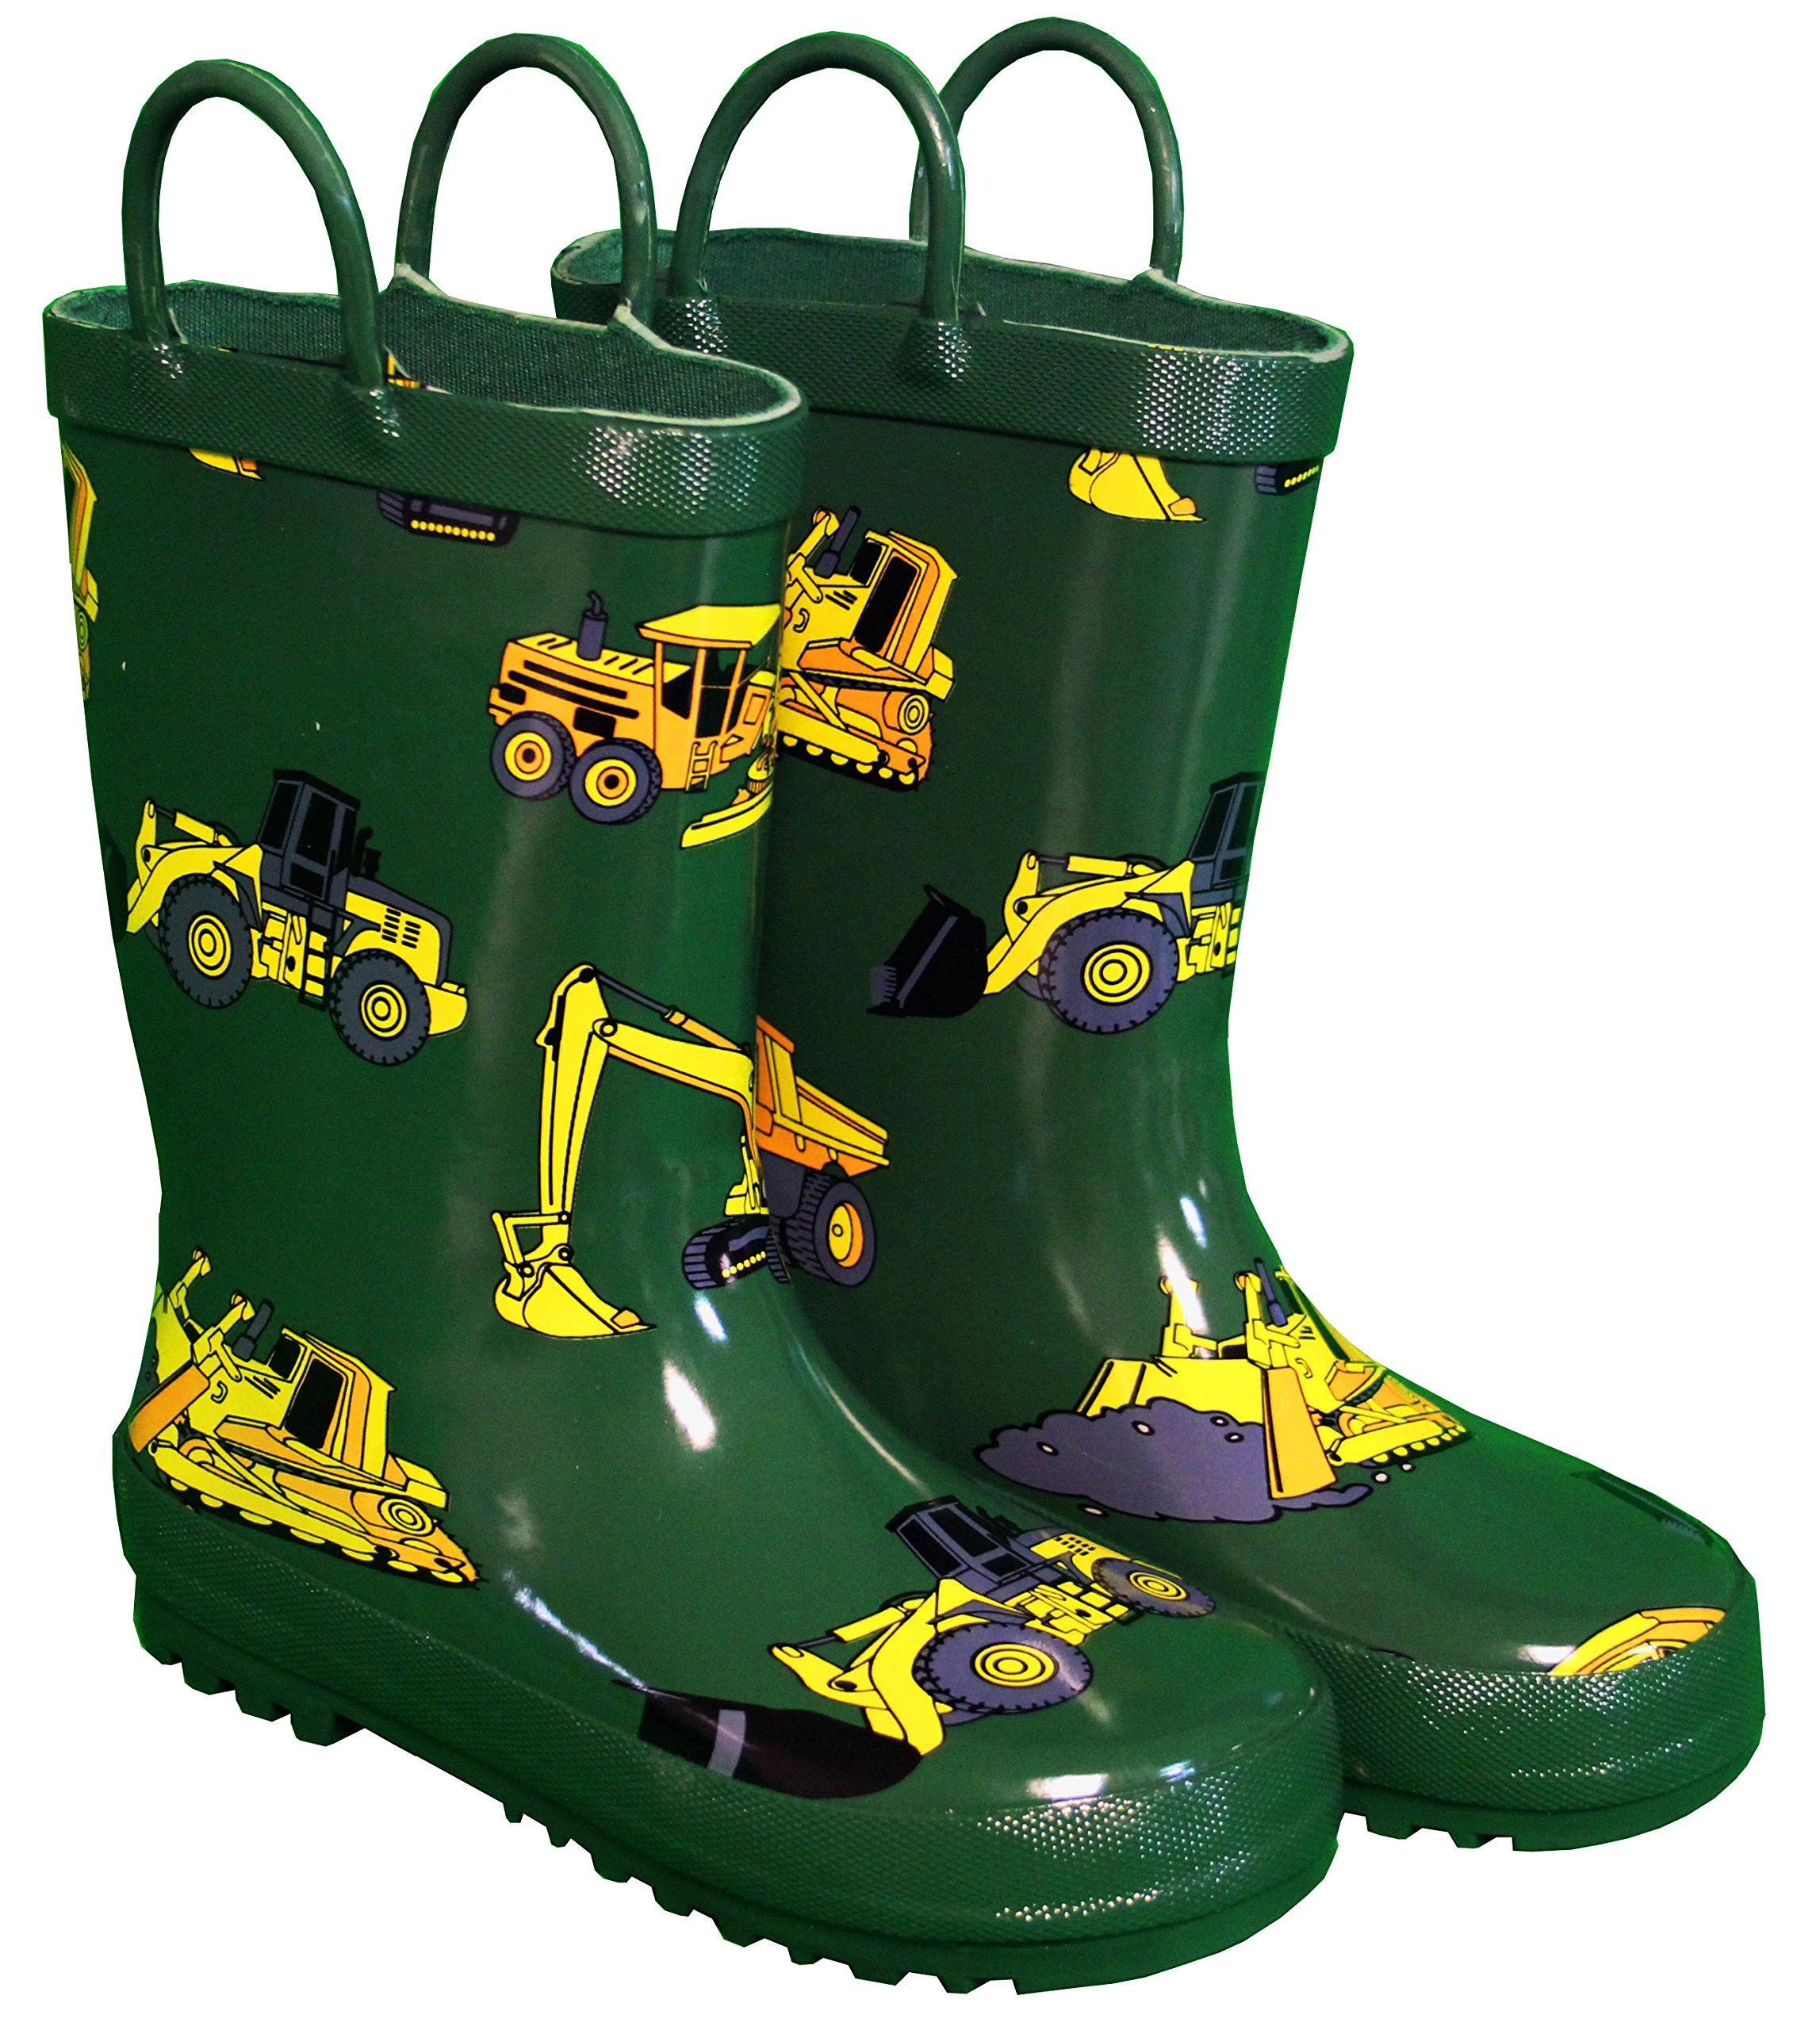 Foxfire for Kids Green with Constuction Equipment Rubber Boots Size 12